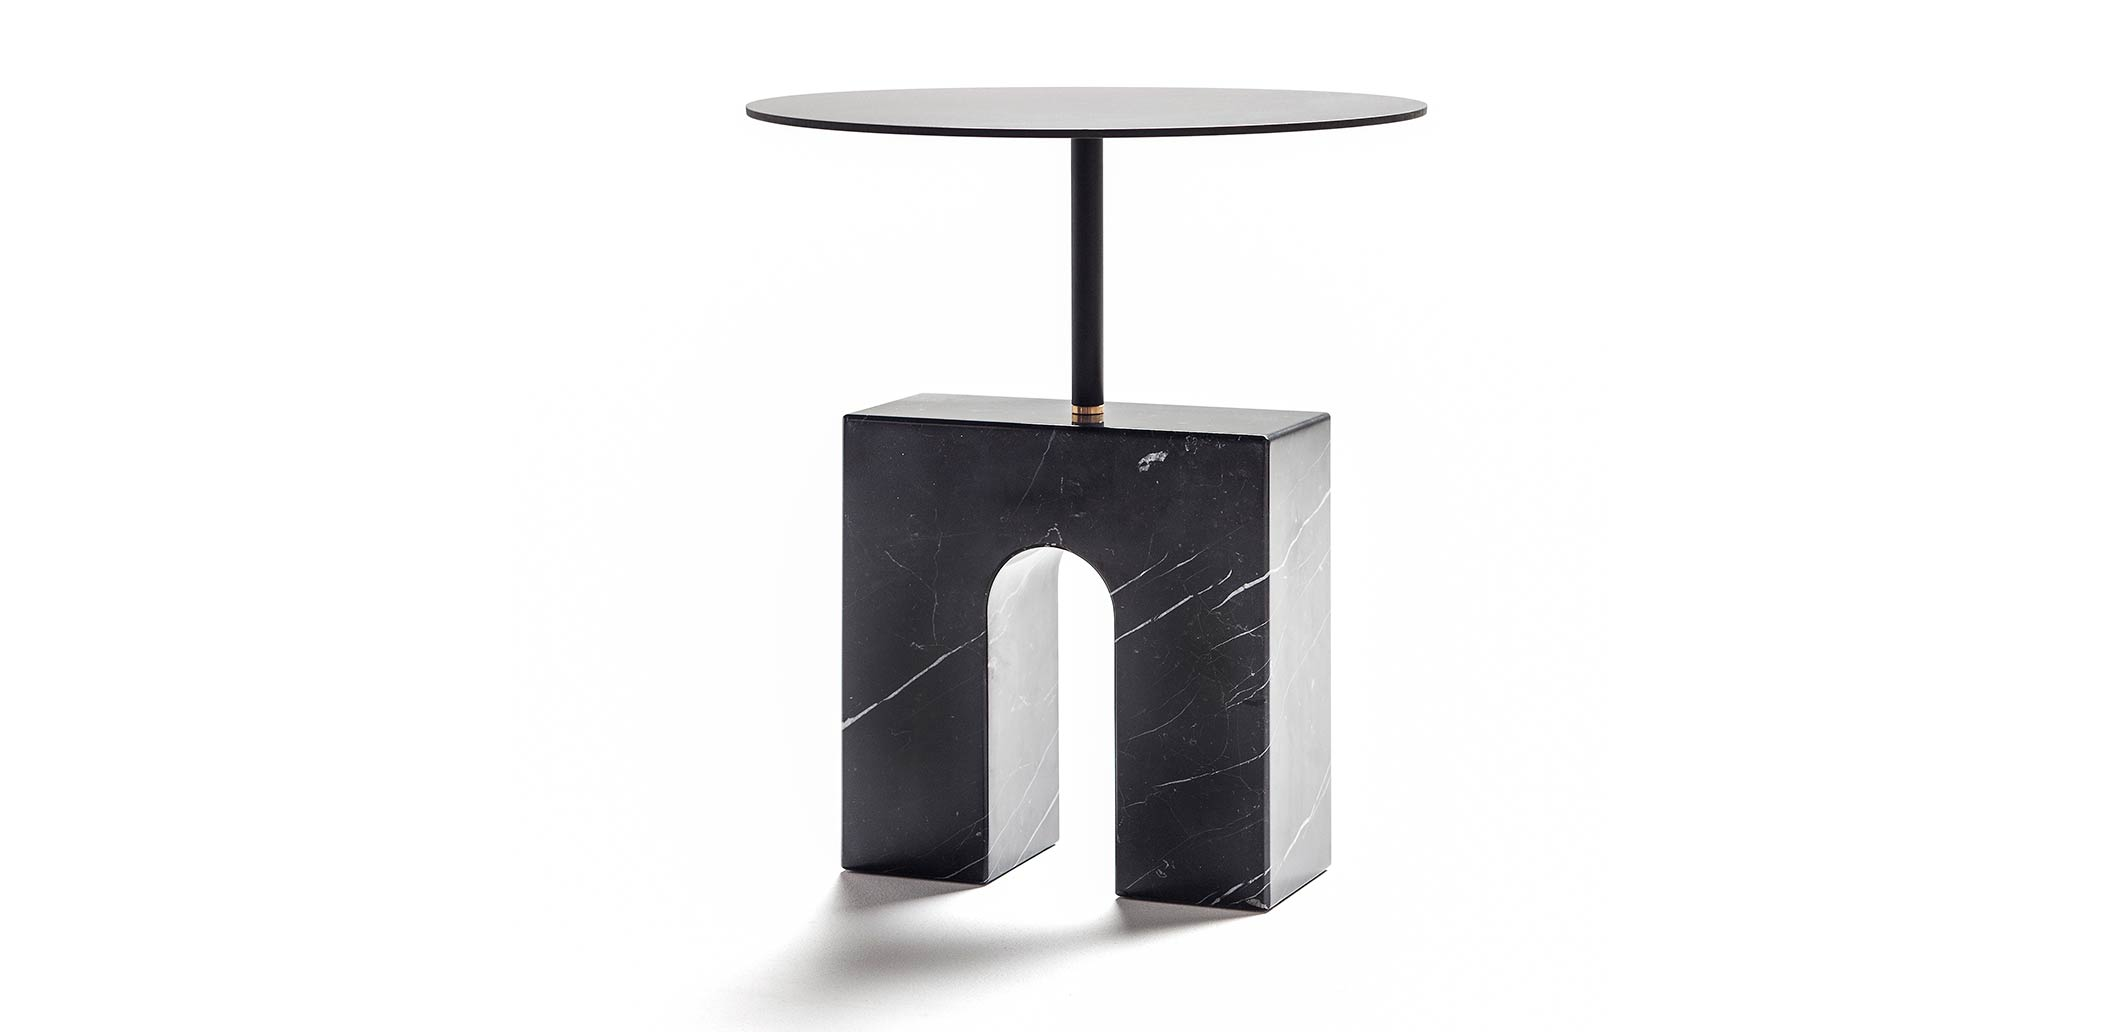 Triumph-single-table_carrousel_A